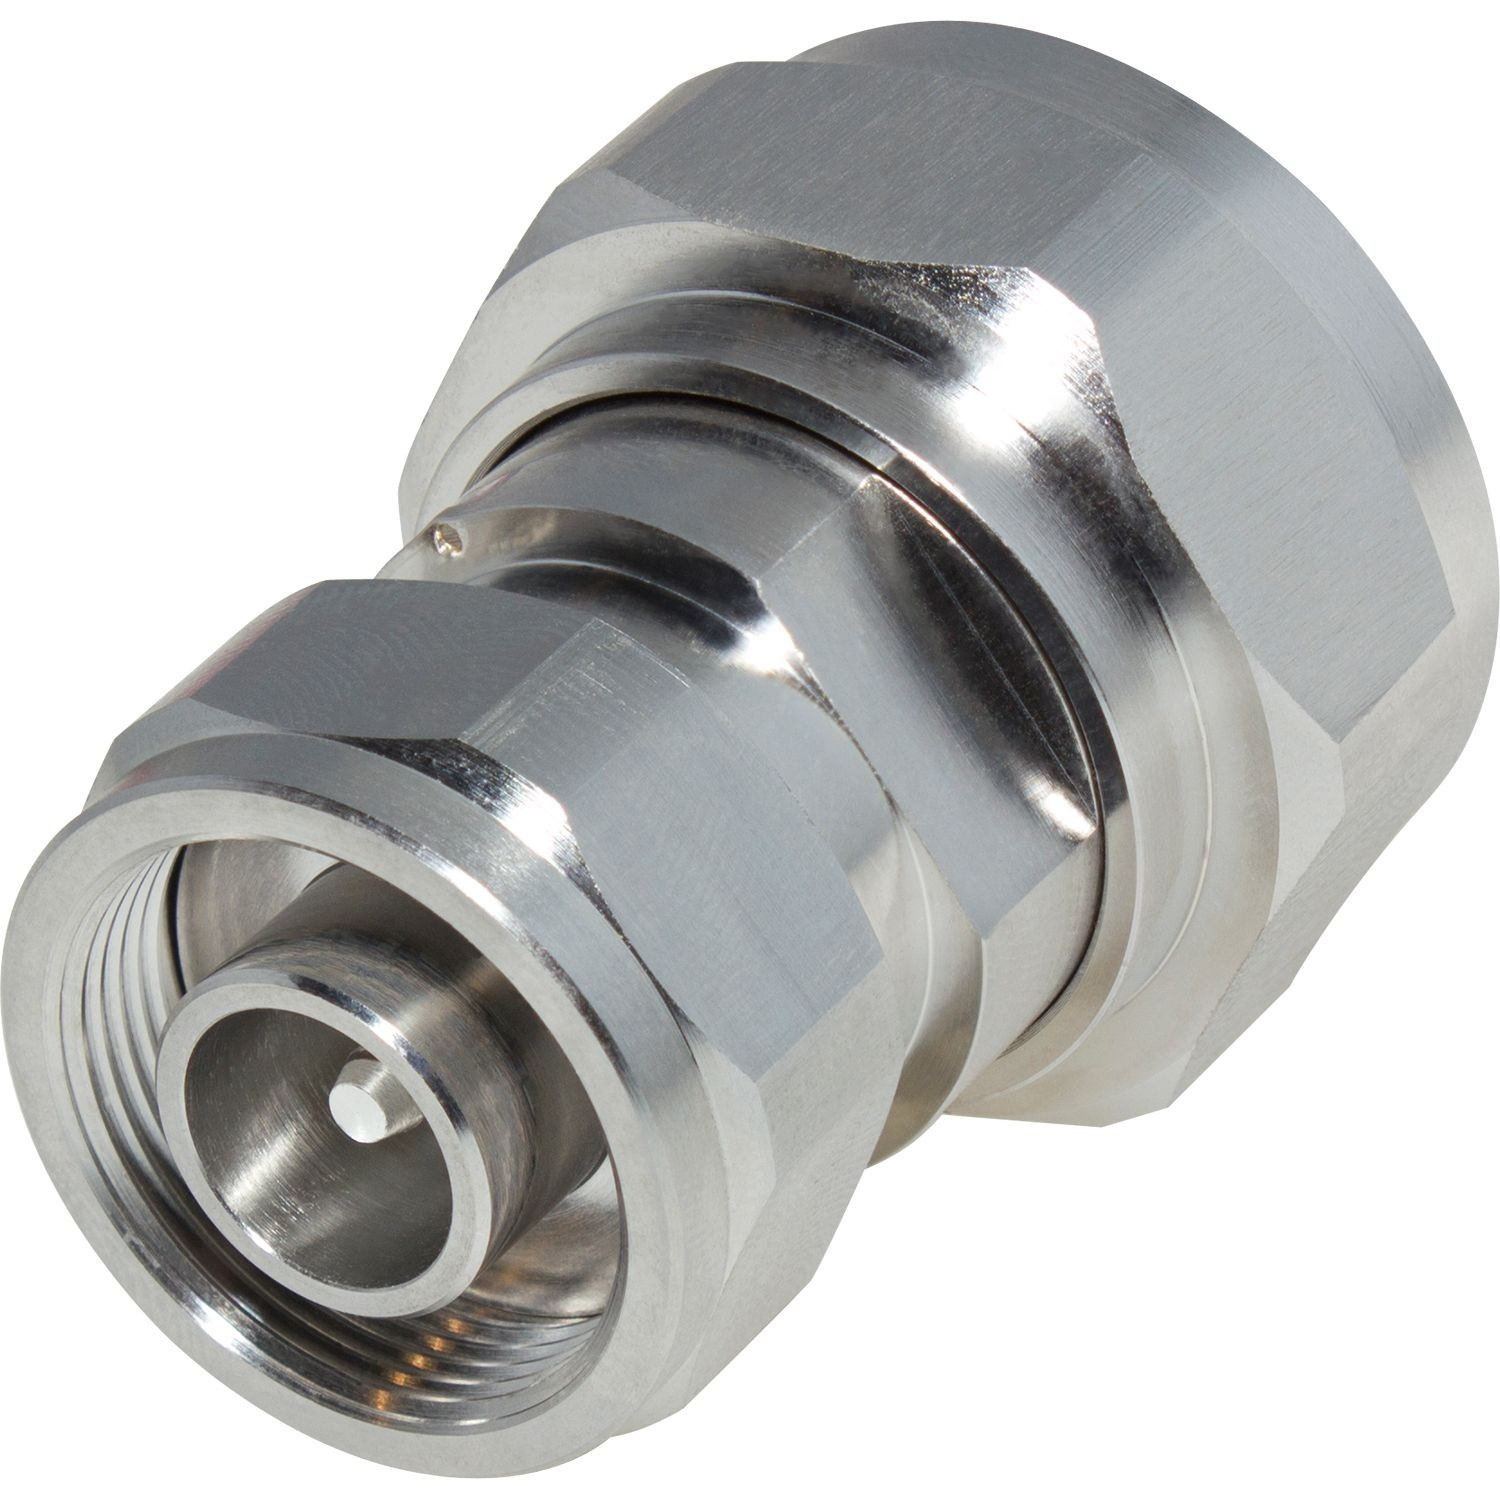 4.1-9.5 MINI DIN MALE TO 7/16 DIN MALE STRAIGHT LOW PIM ADAPTER; WHITE BRONZE PLATED BODY, SILVER PLATED CONTACT, PTFE DIELECTRIC